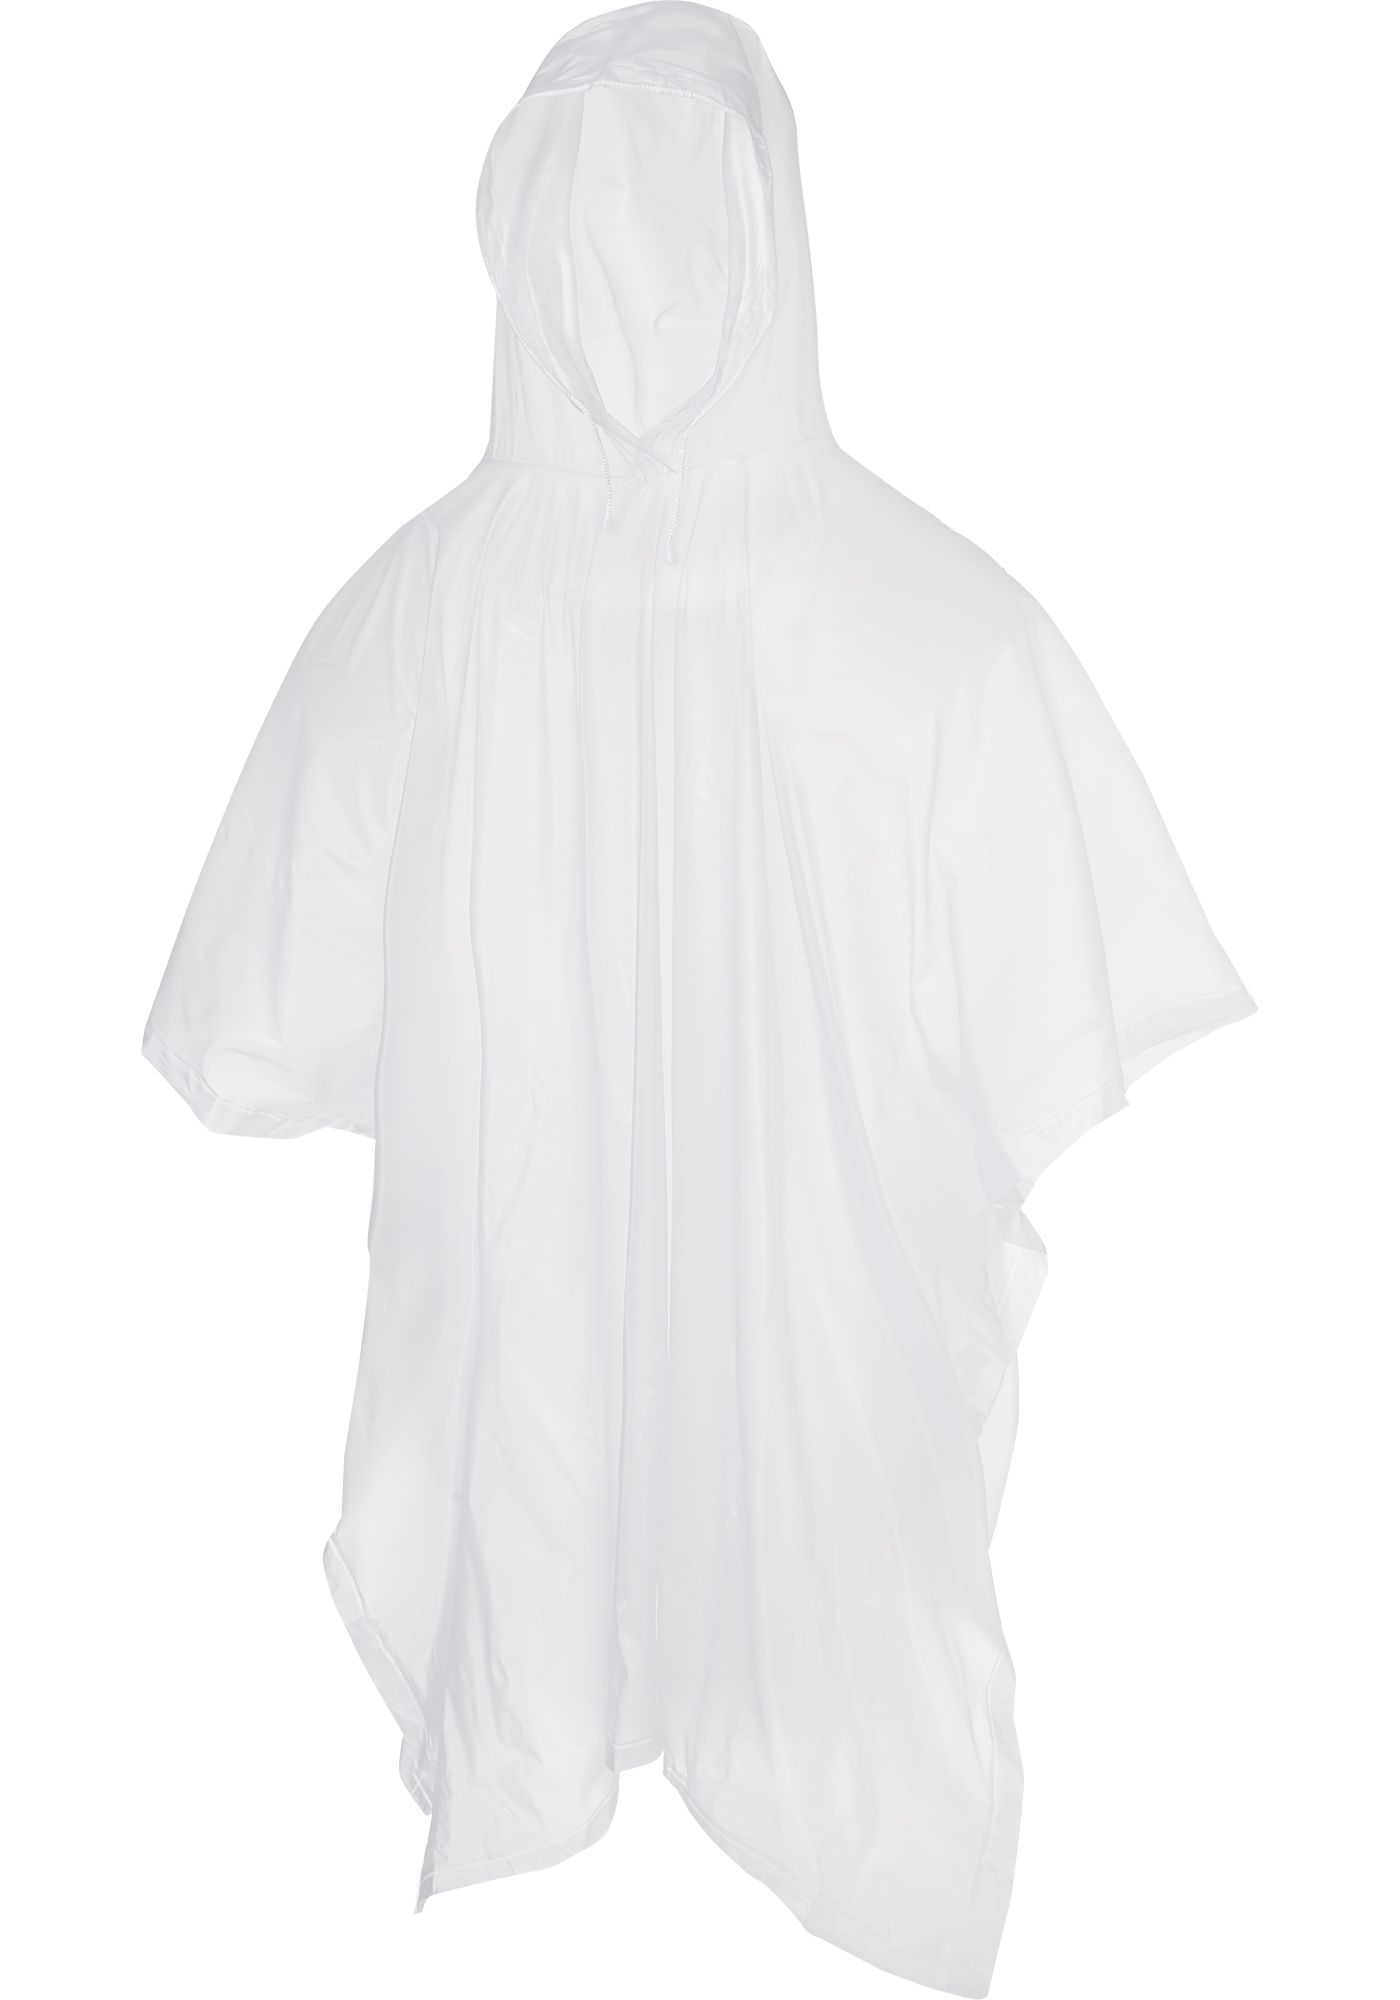 DICK'S Sporting Goods Deluxe Poncho